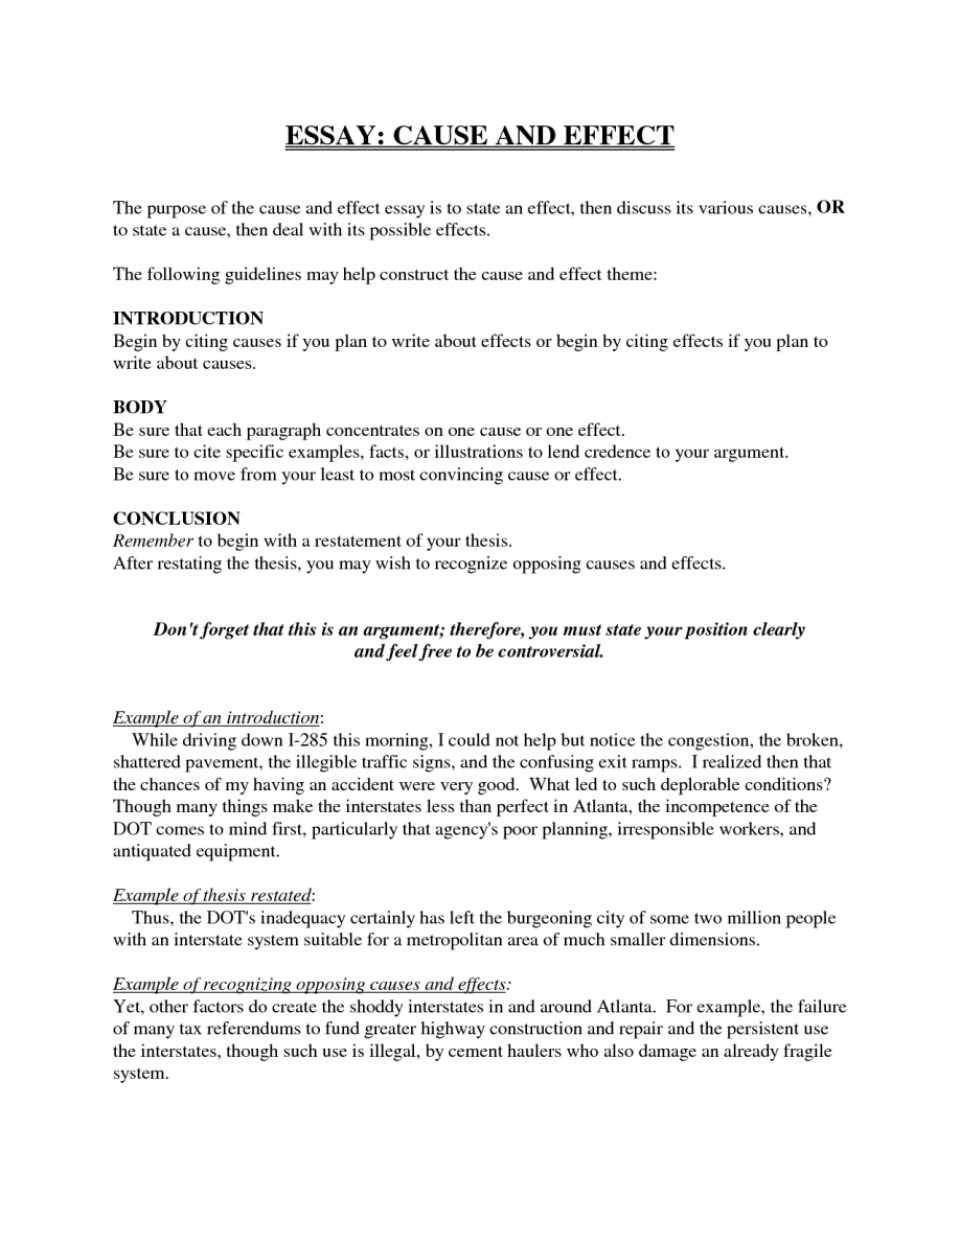 Marco polo essay questions